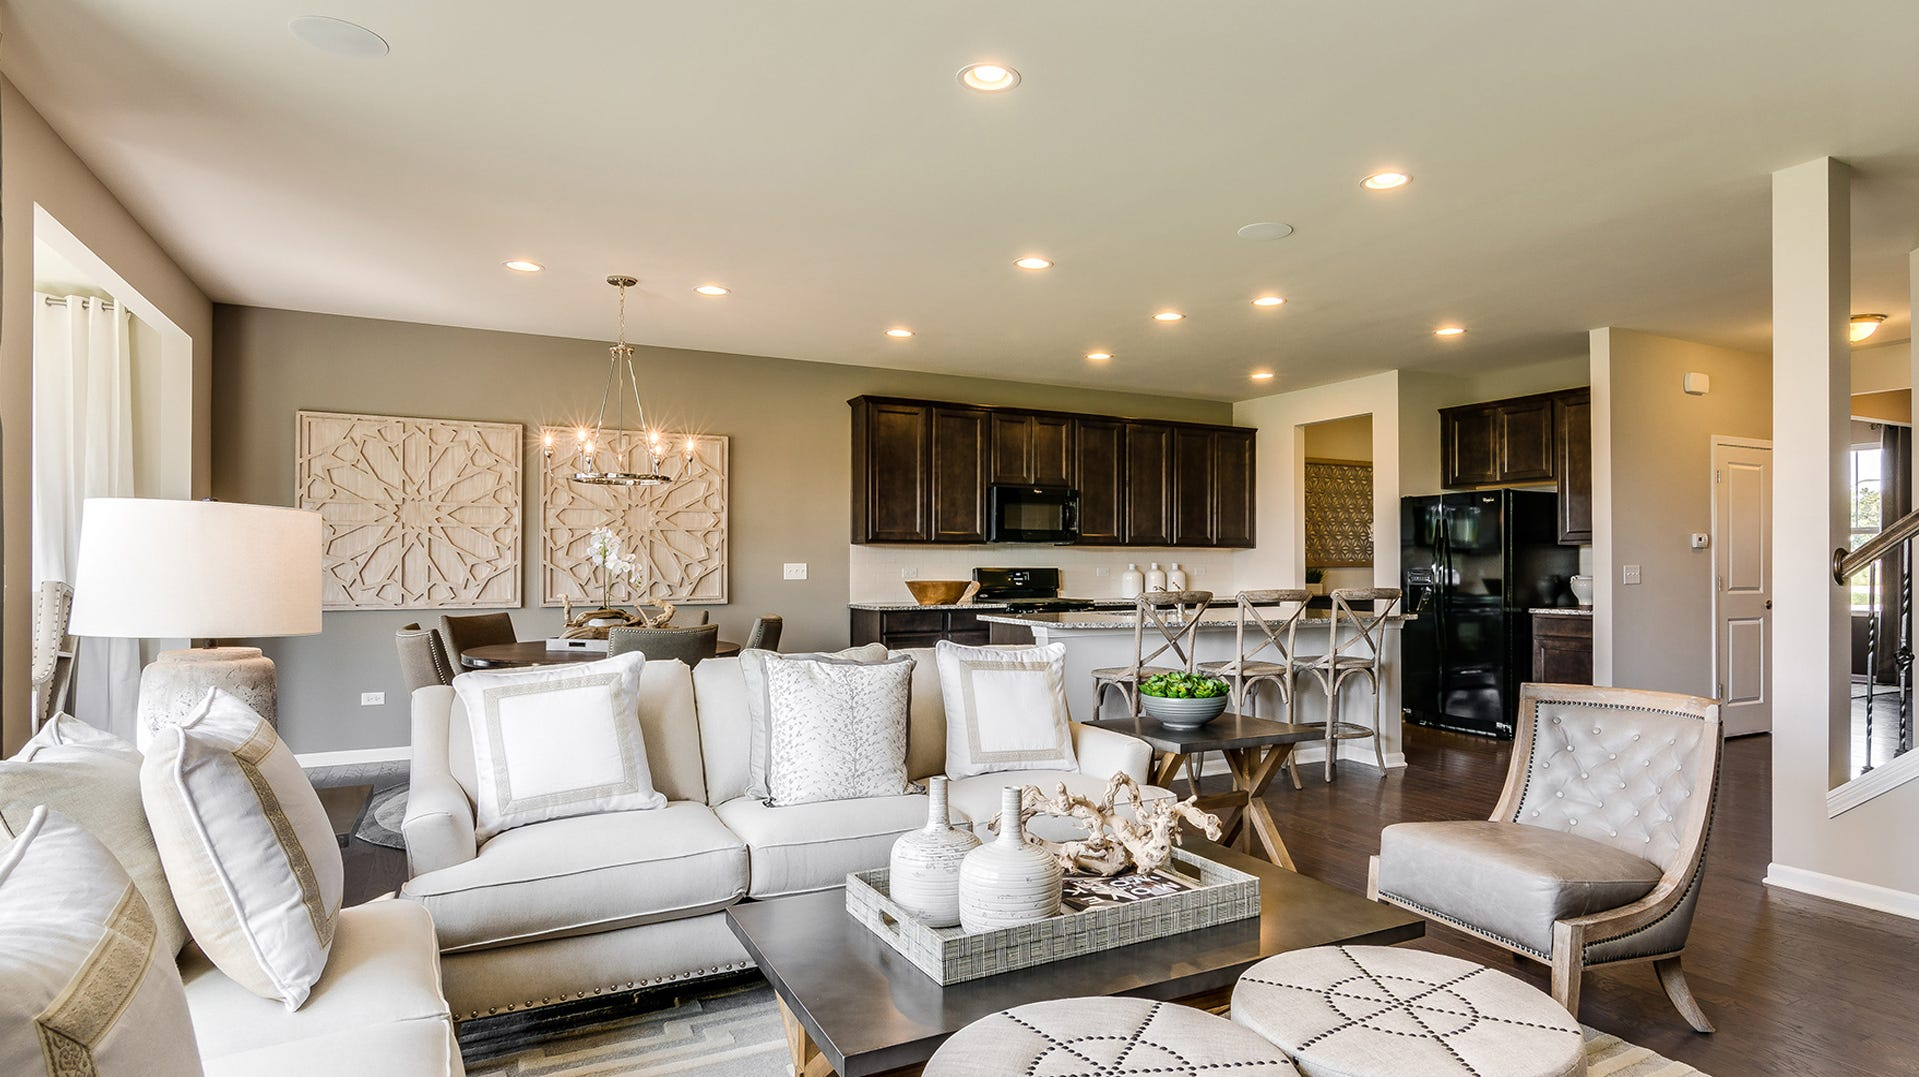 Pulte's homes in Norman Creek range from 2,300 to more than 2,800 square feet of living space.